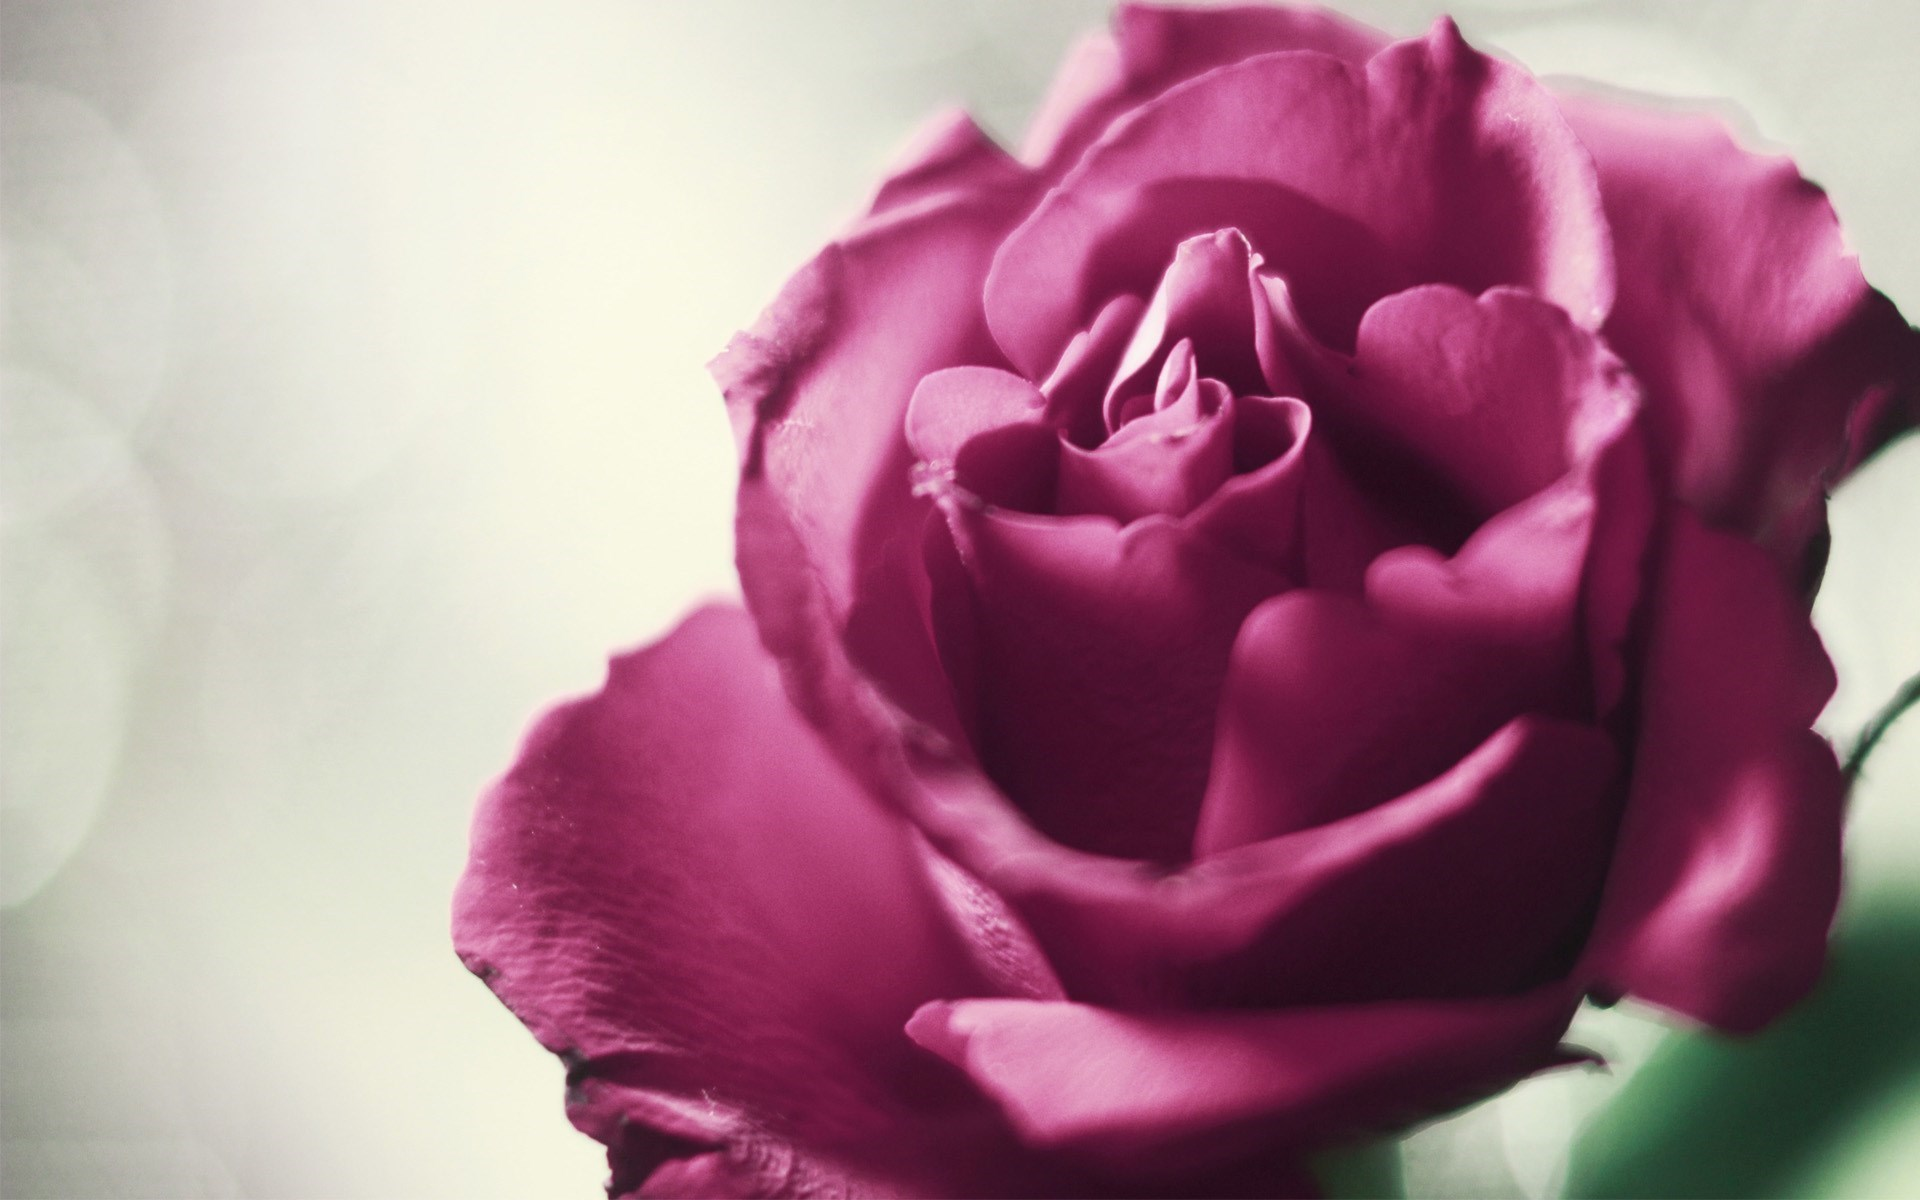 Pink roses wallpaper hd hd desktop wallpapers 4k hd - Pink roses background hd ...